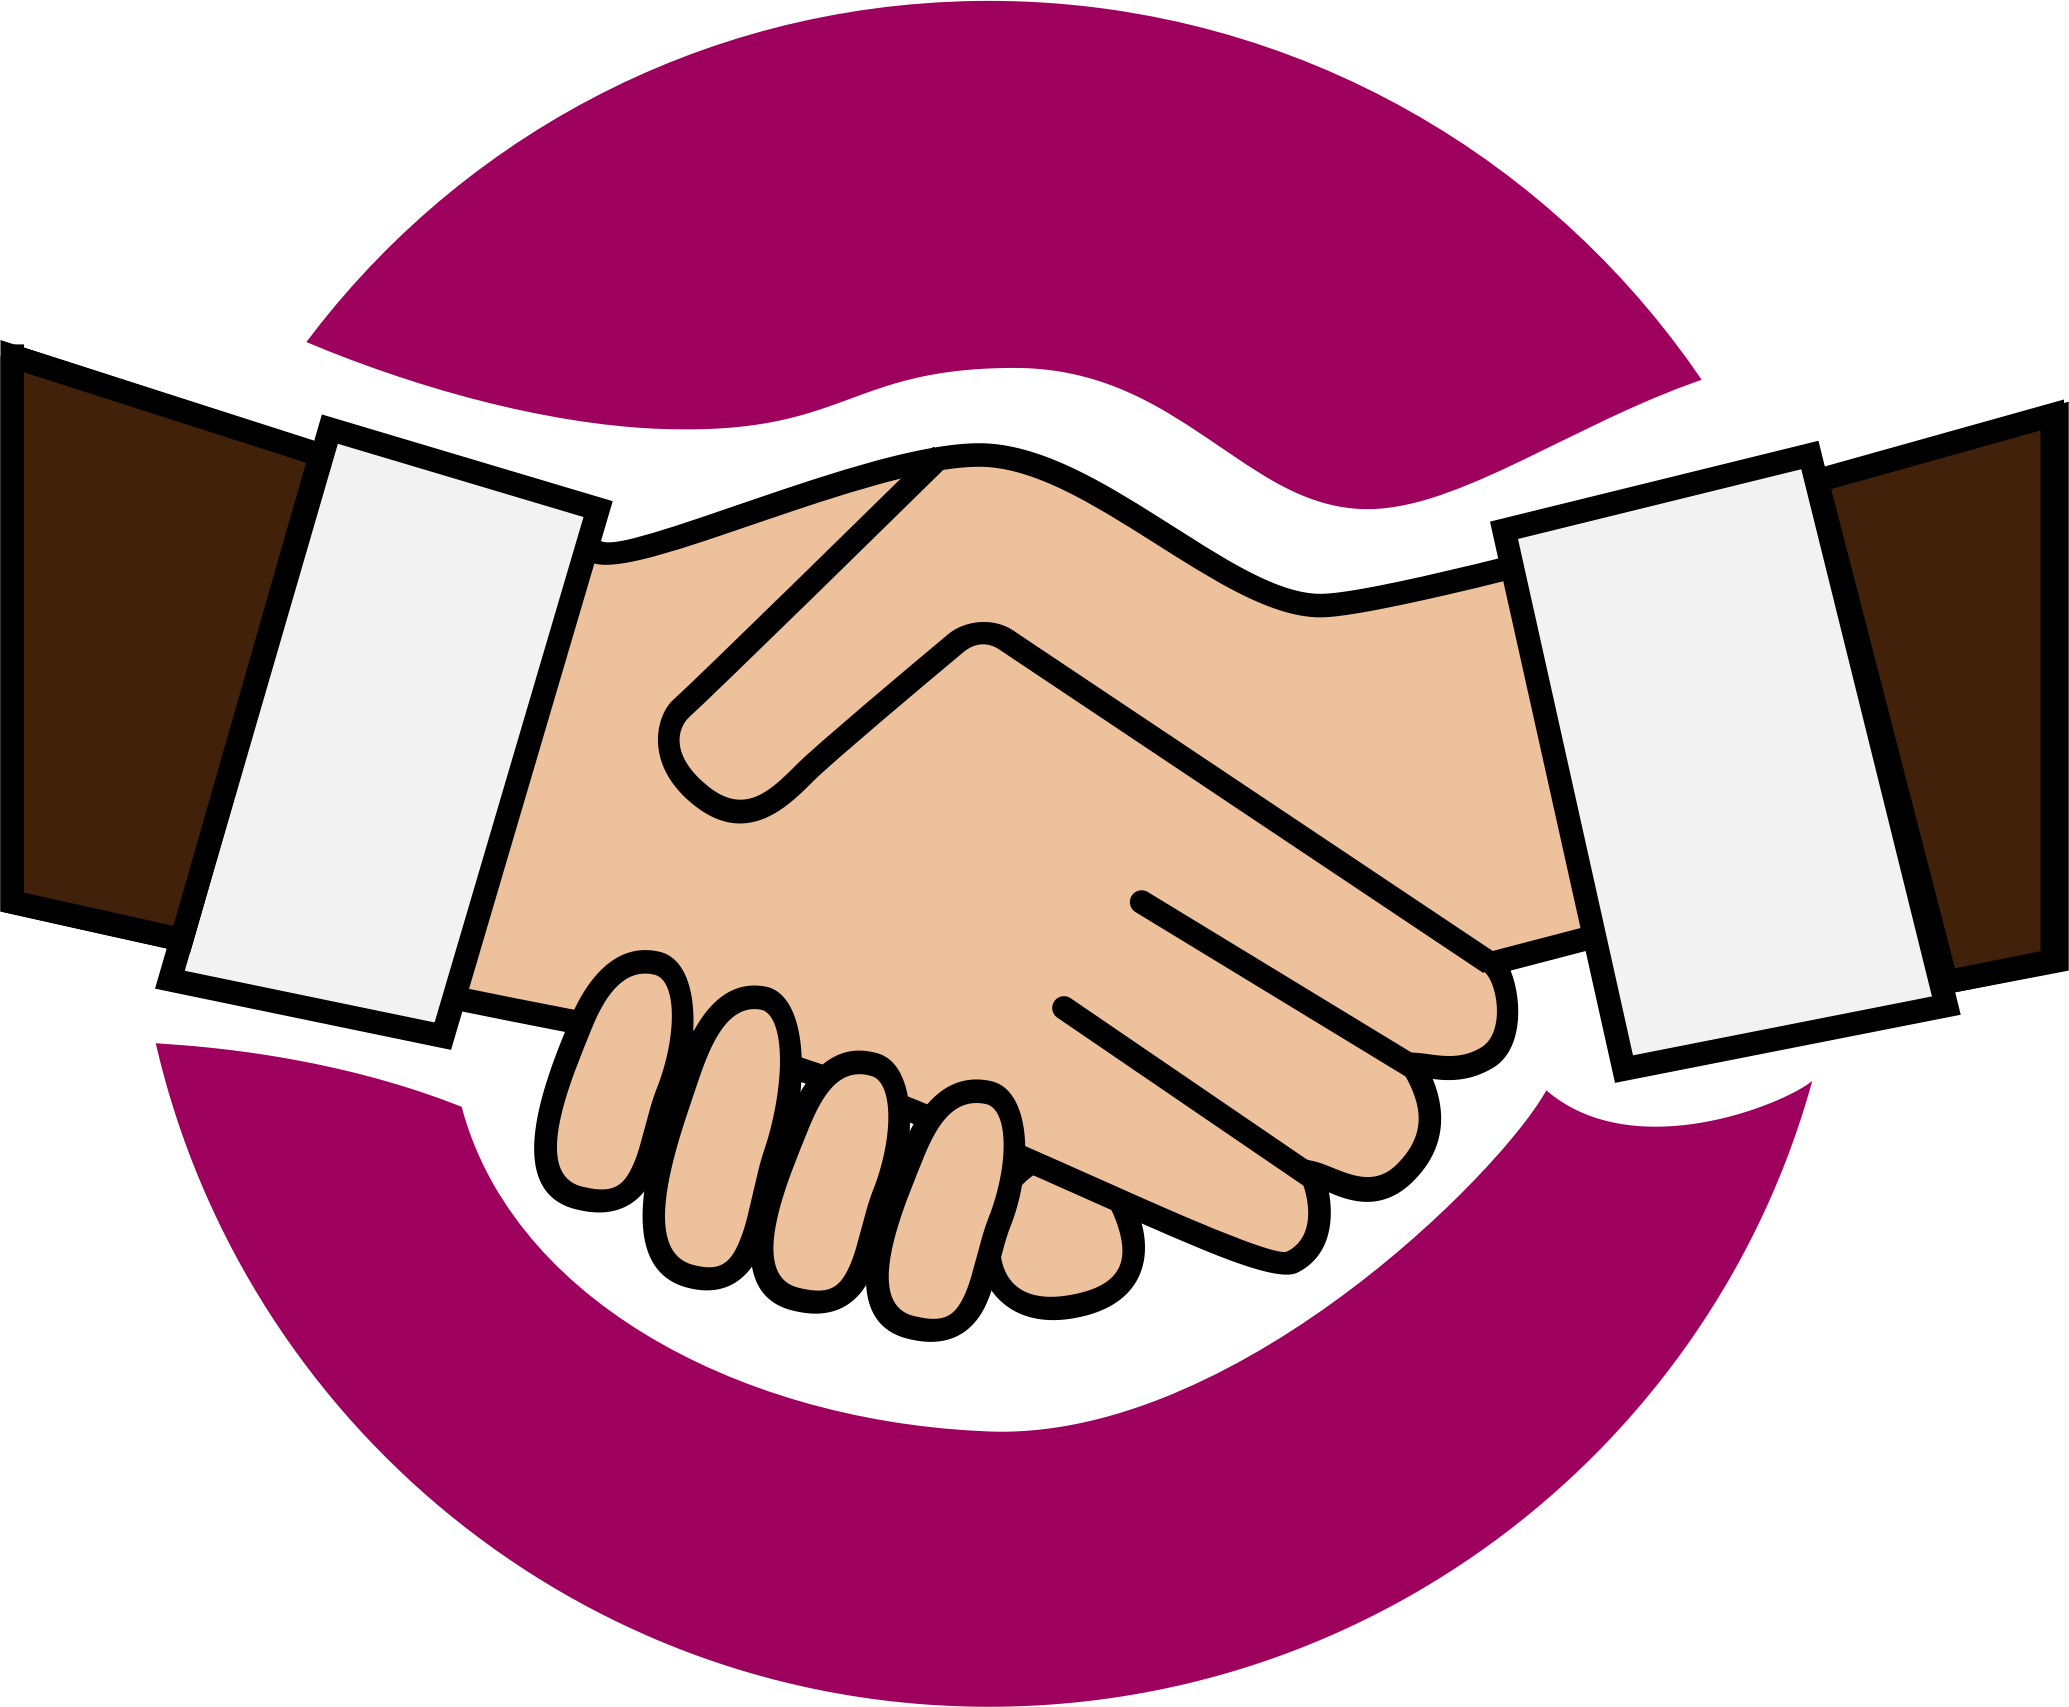 clipart a handshake icon rh openclipart org handshake clipart vector handshake clipart no background